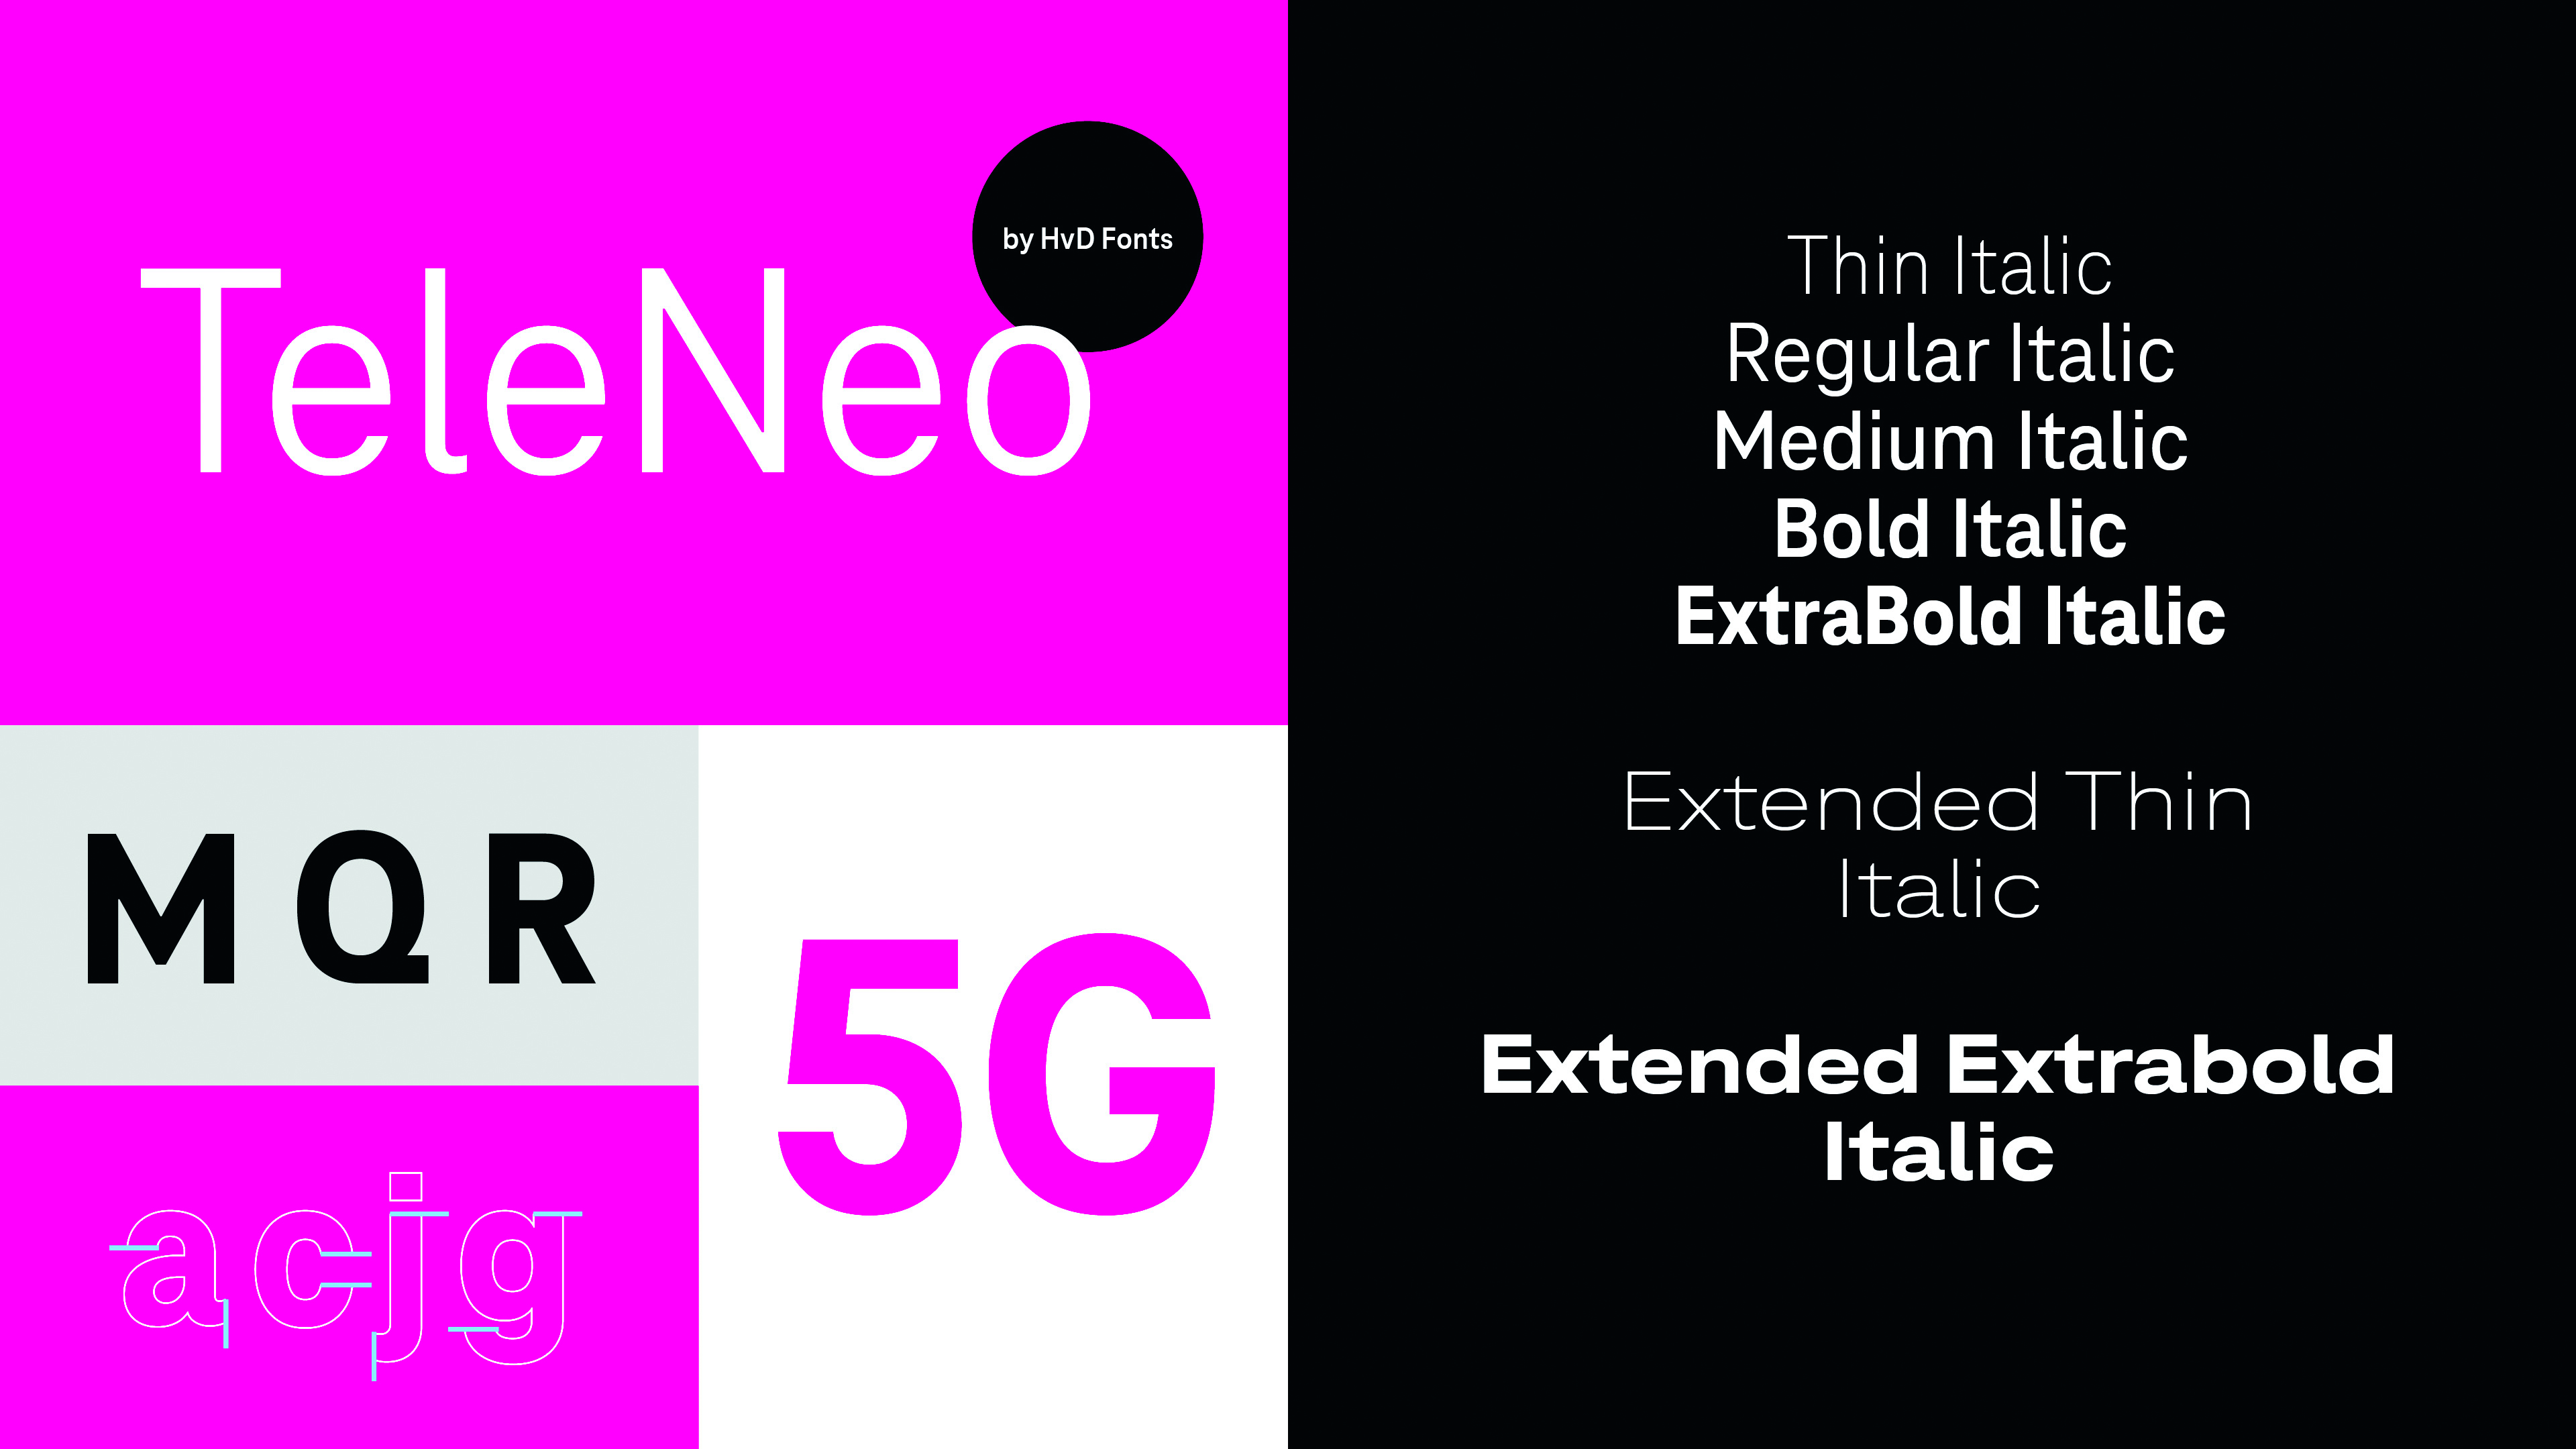 Deutsche Telekom's TeleNeo font: Comic Sans would have worked out cheaper